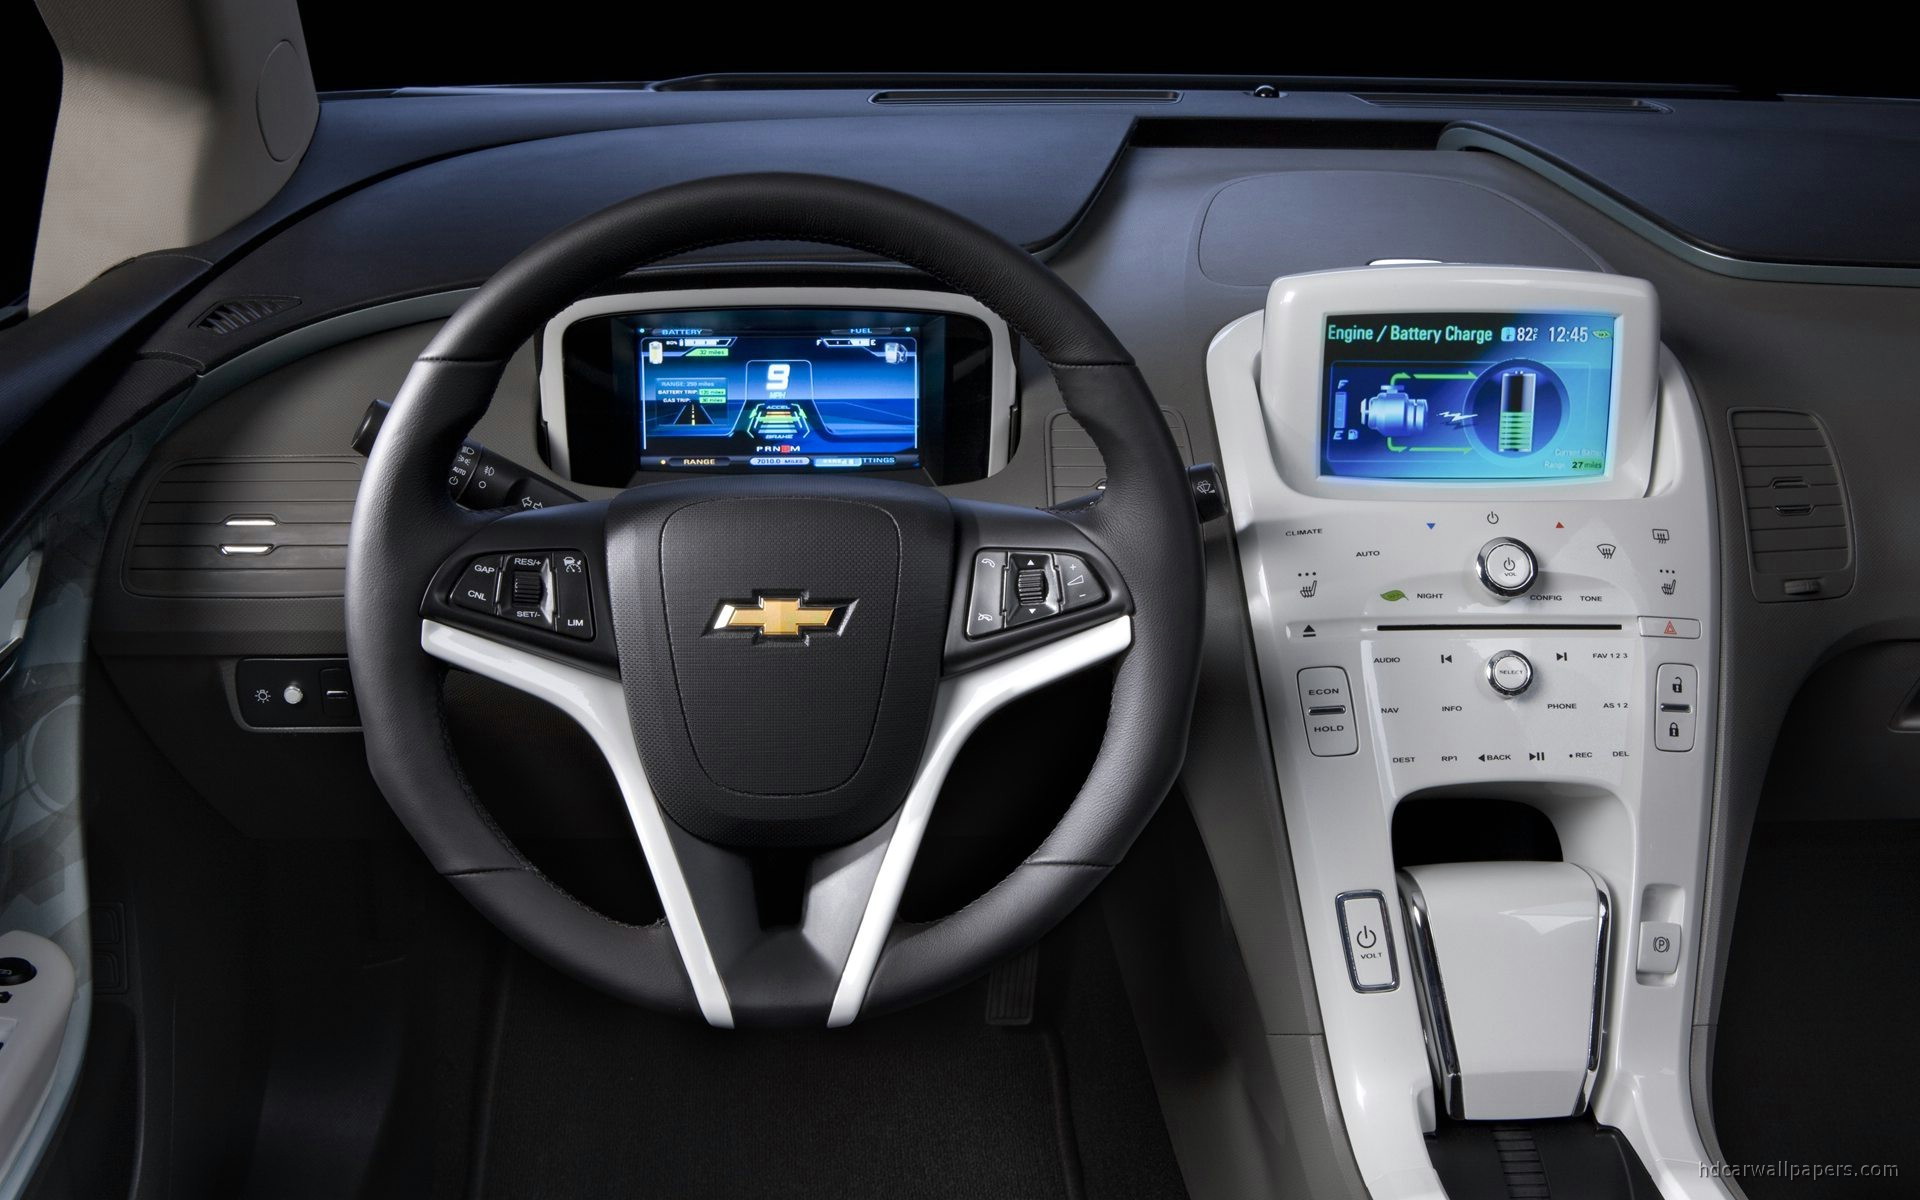 Chevrolet Volt Interior Wallpaper HD Car Wallpapers ID